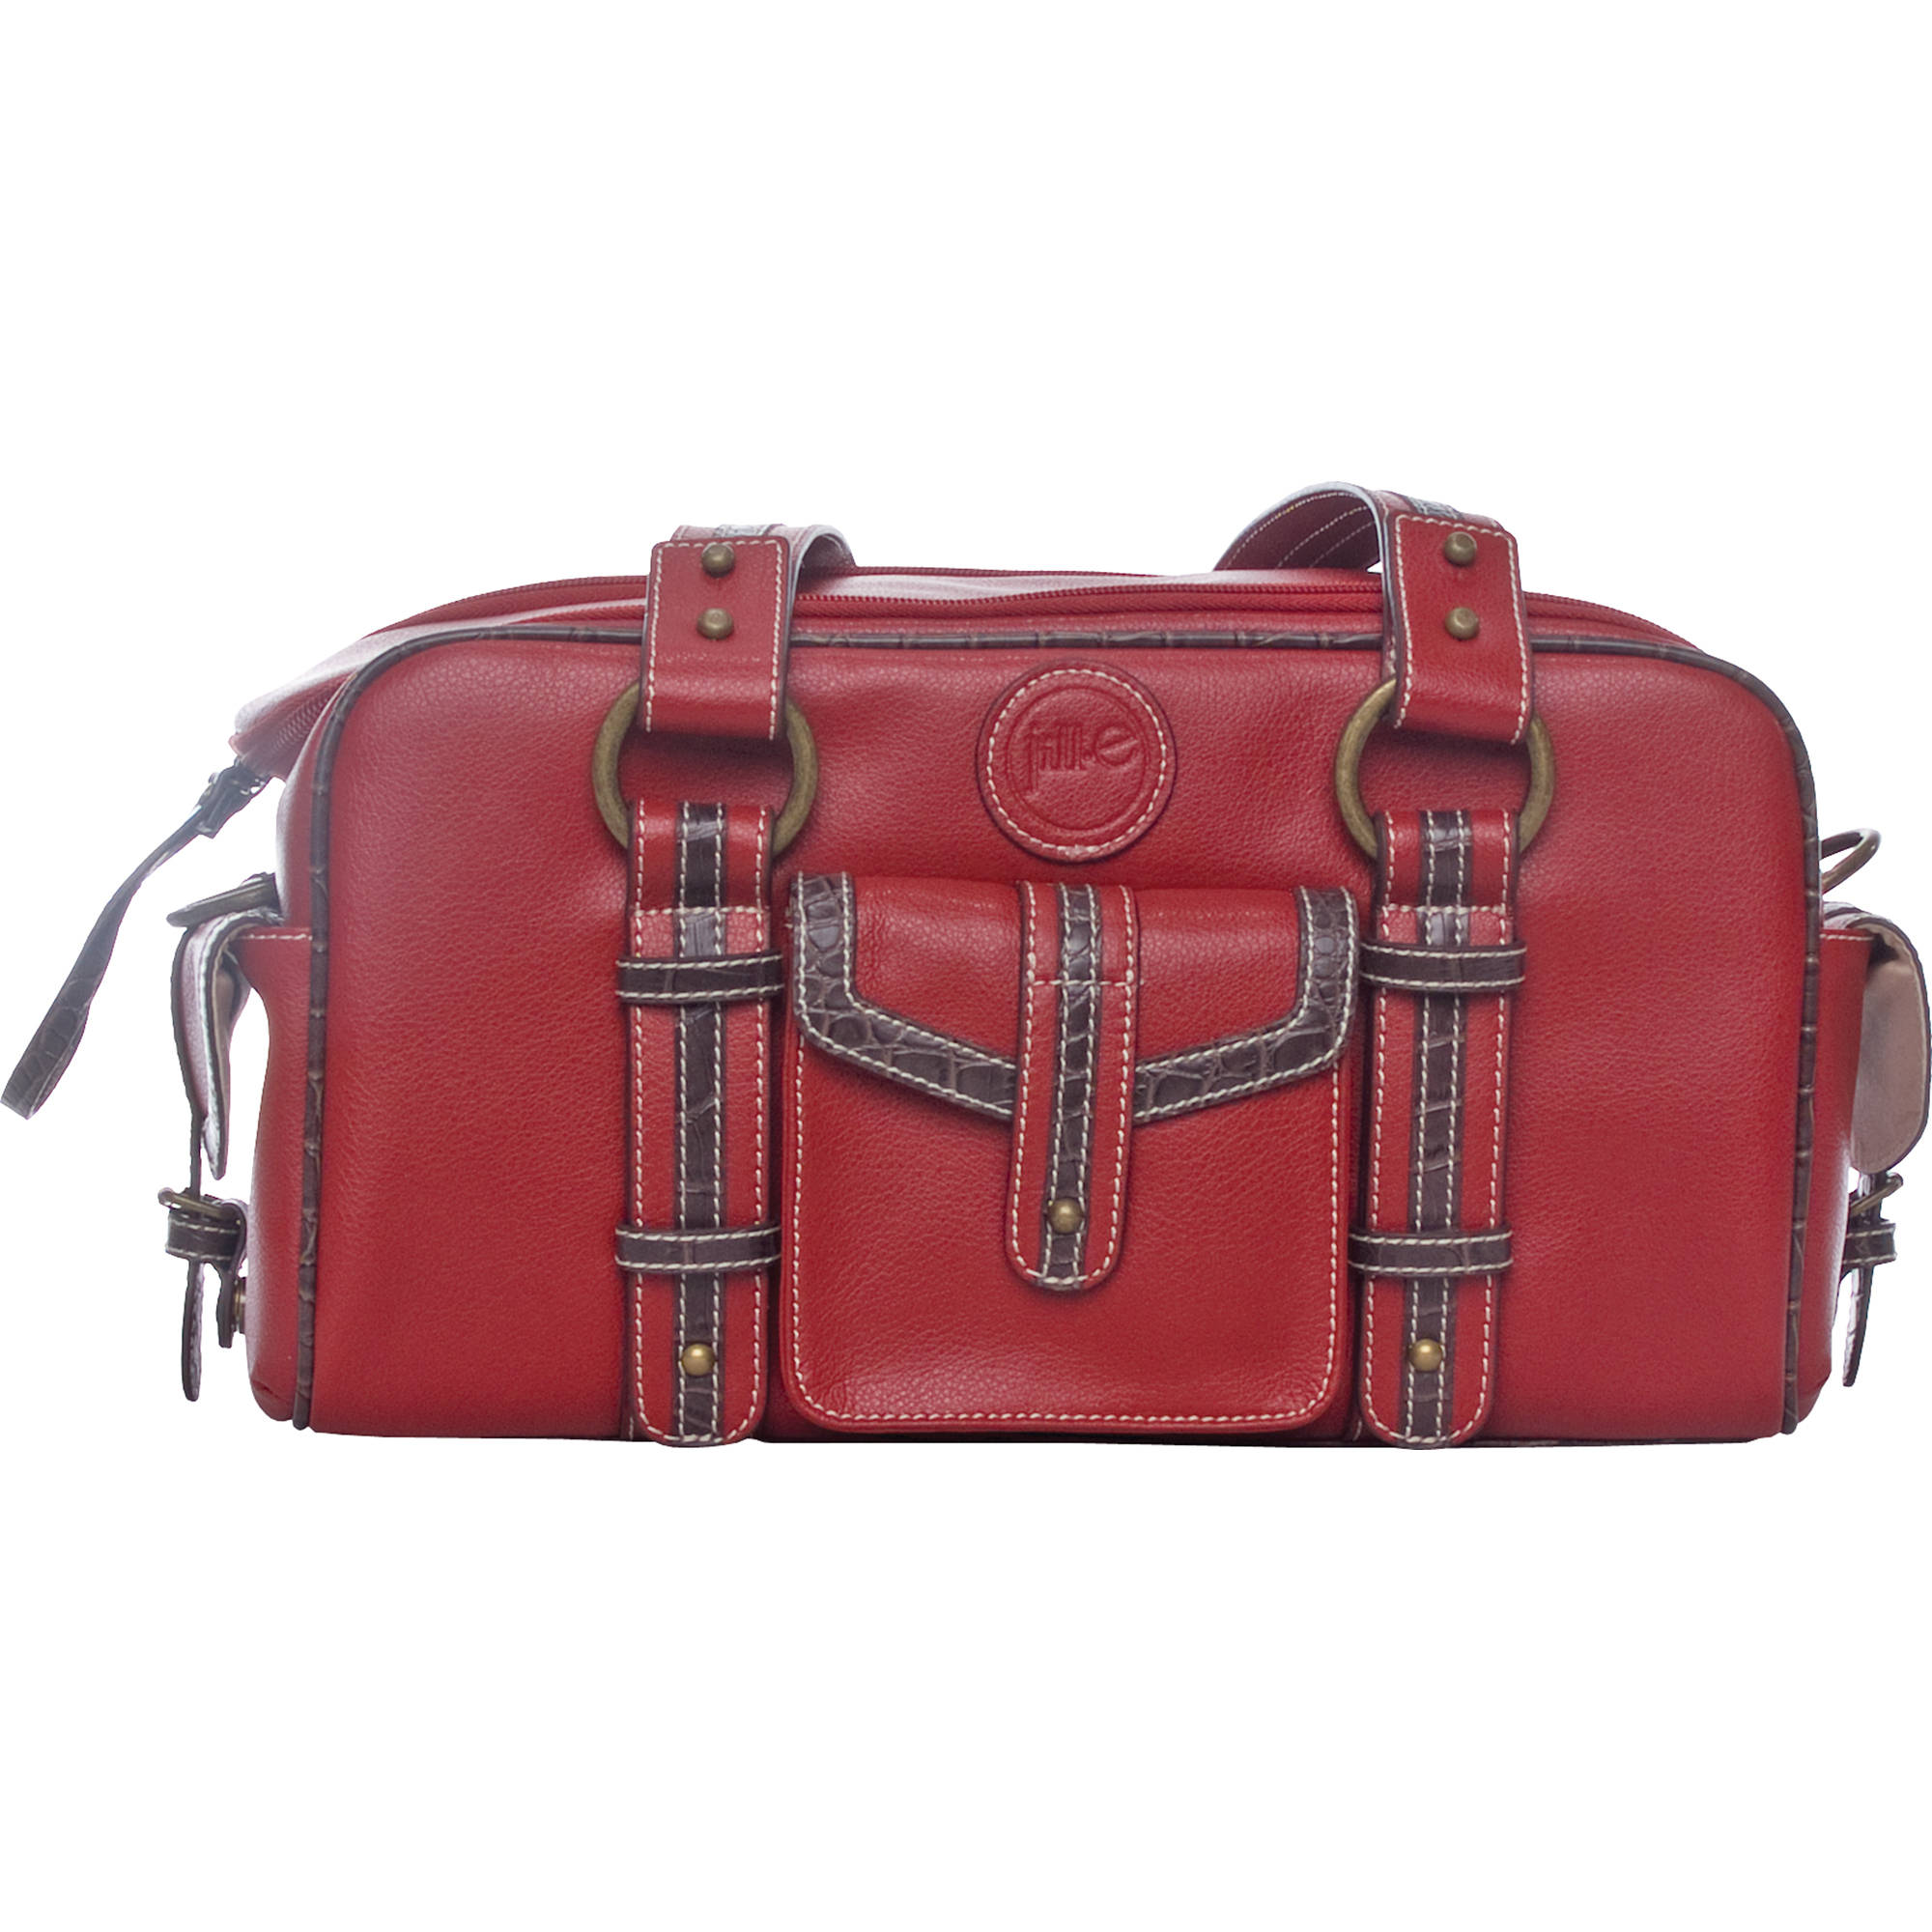 Jill E Designs Small Camera Bag Red With Croc Trim